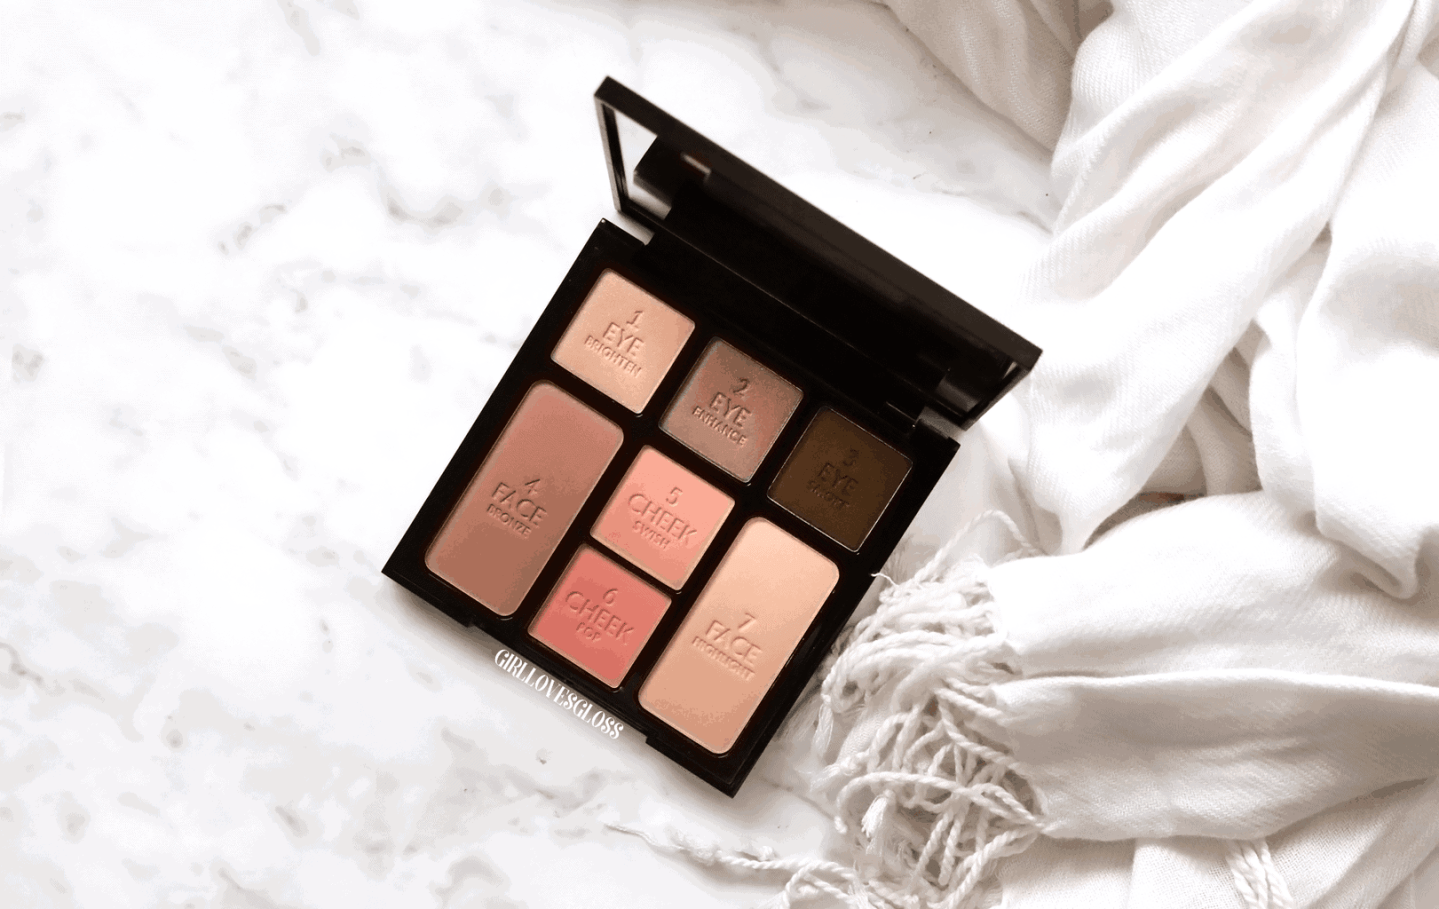 Charlotte Tilbury Instant Look In A Palette Review + Giveaway